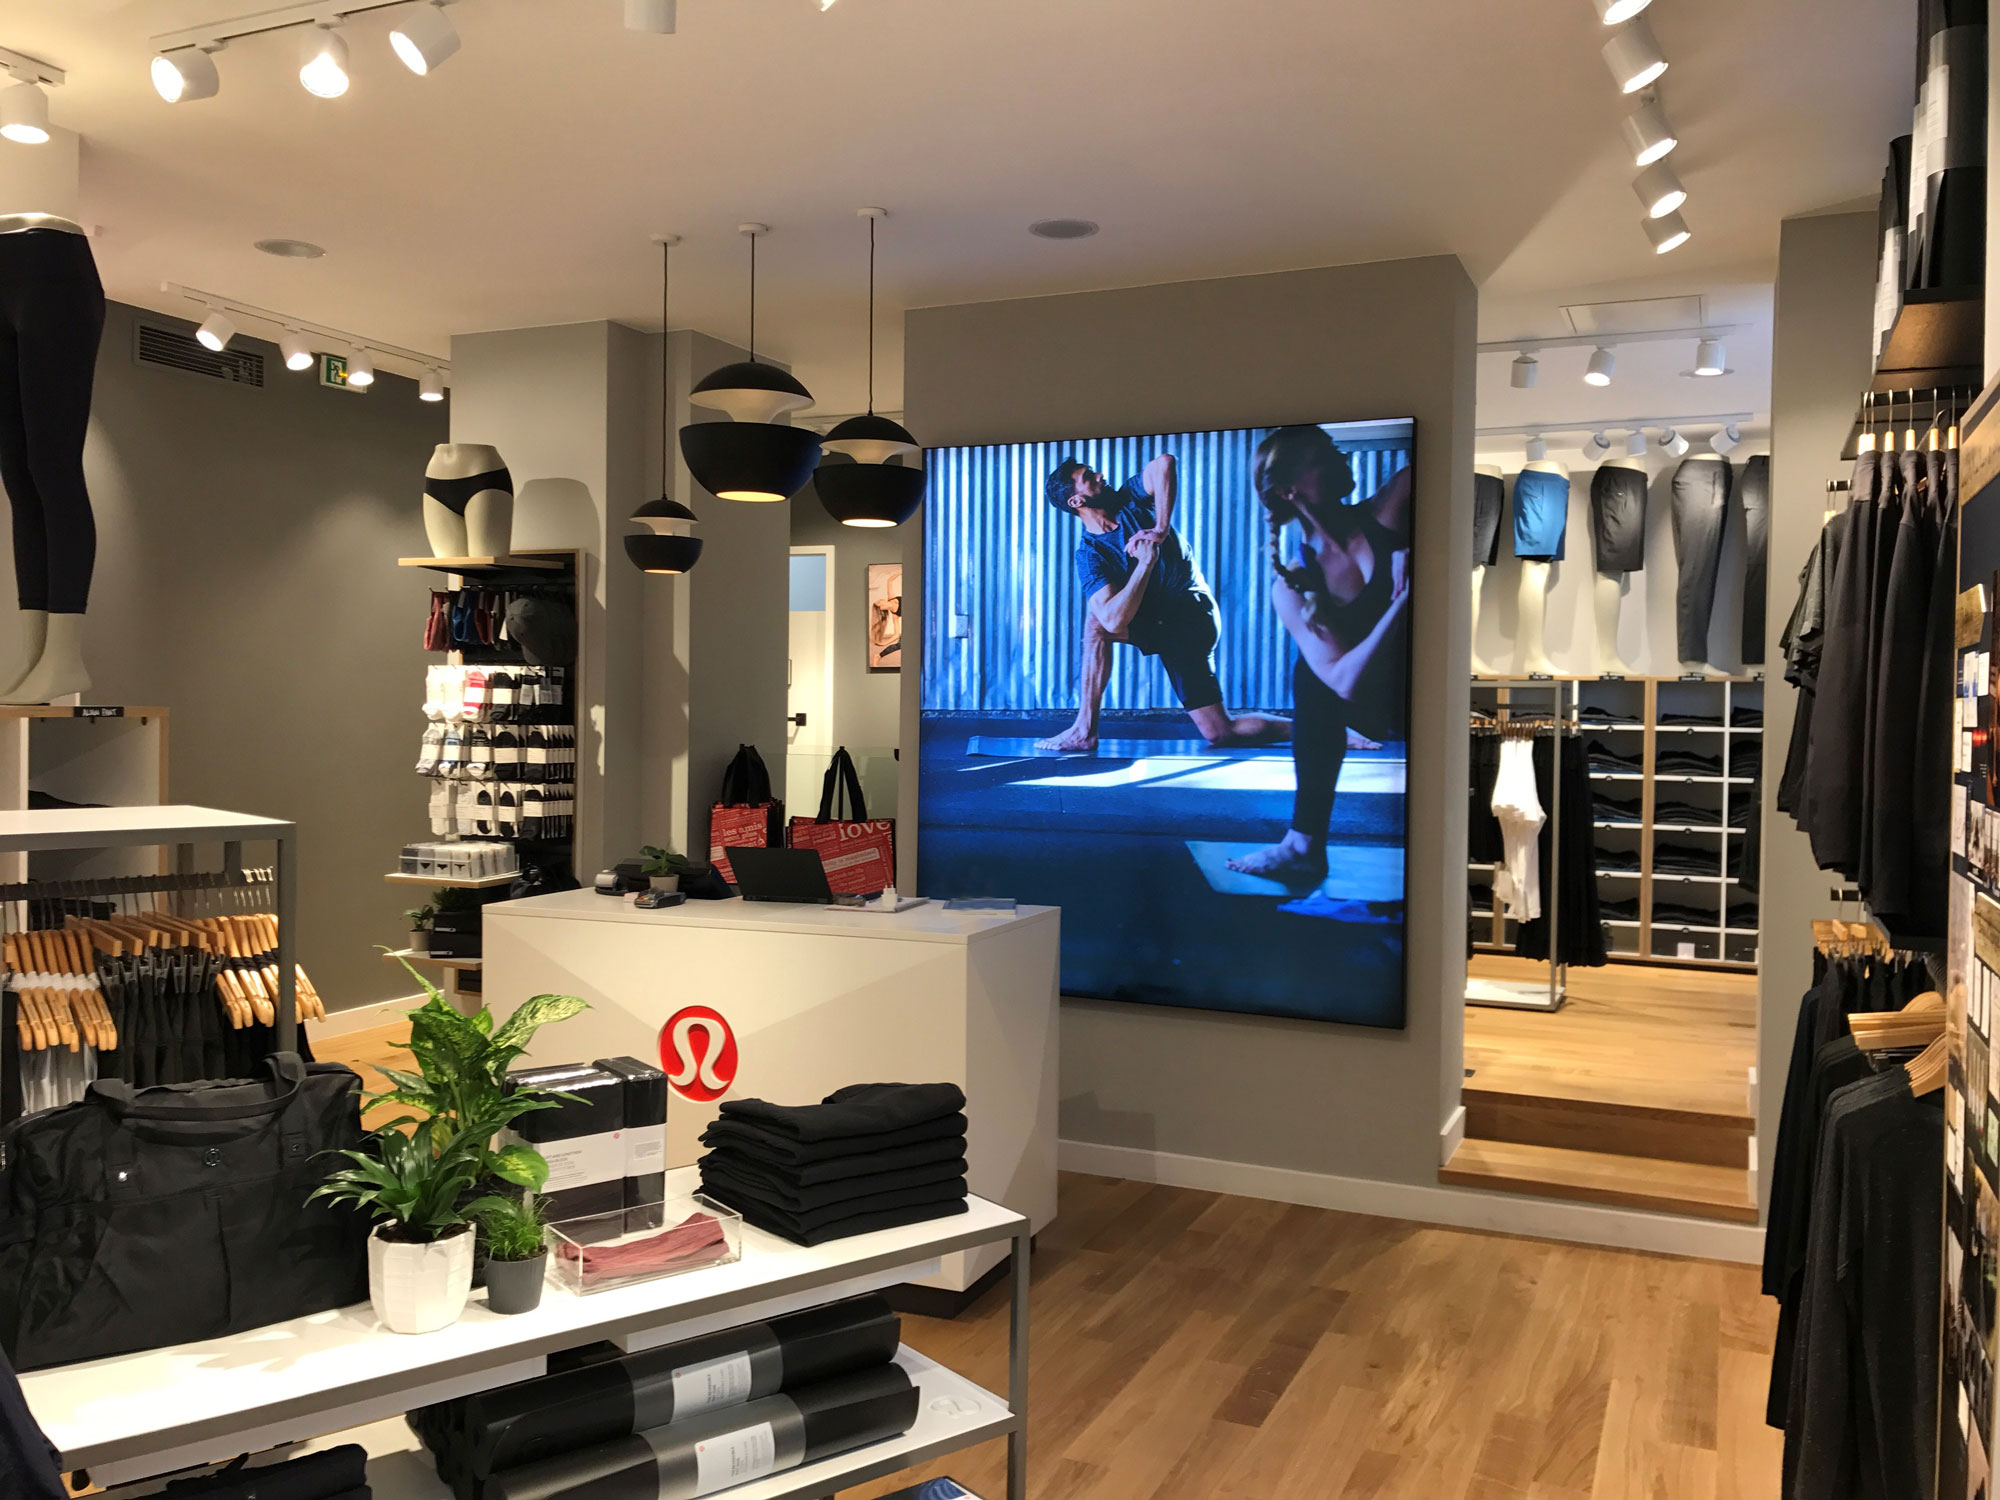 magasin lululemon rue des rosiers paris atelier nma. Black Bedroom Furniture Sets. Home Design Ideas